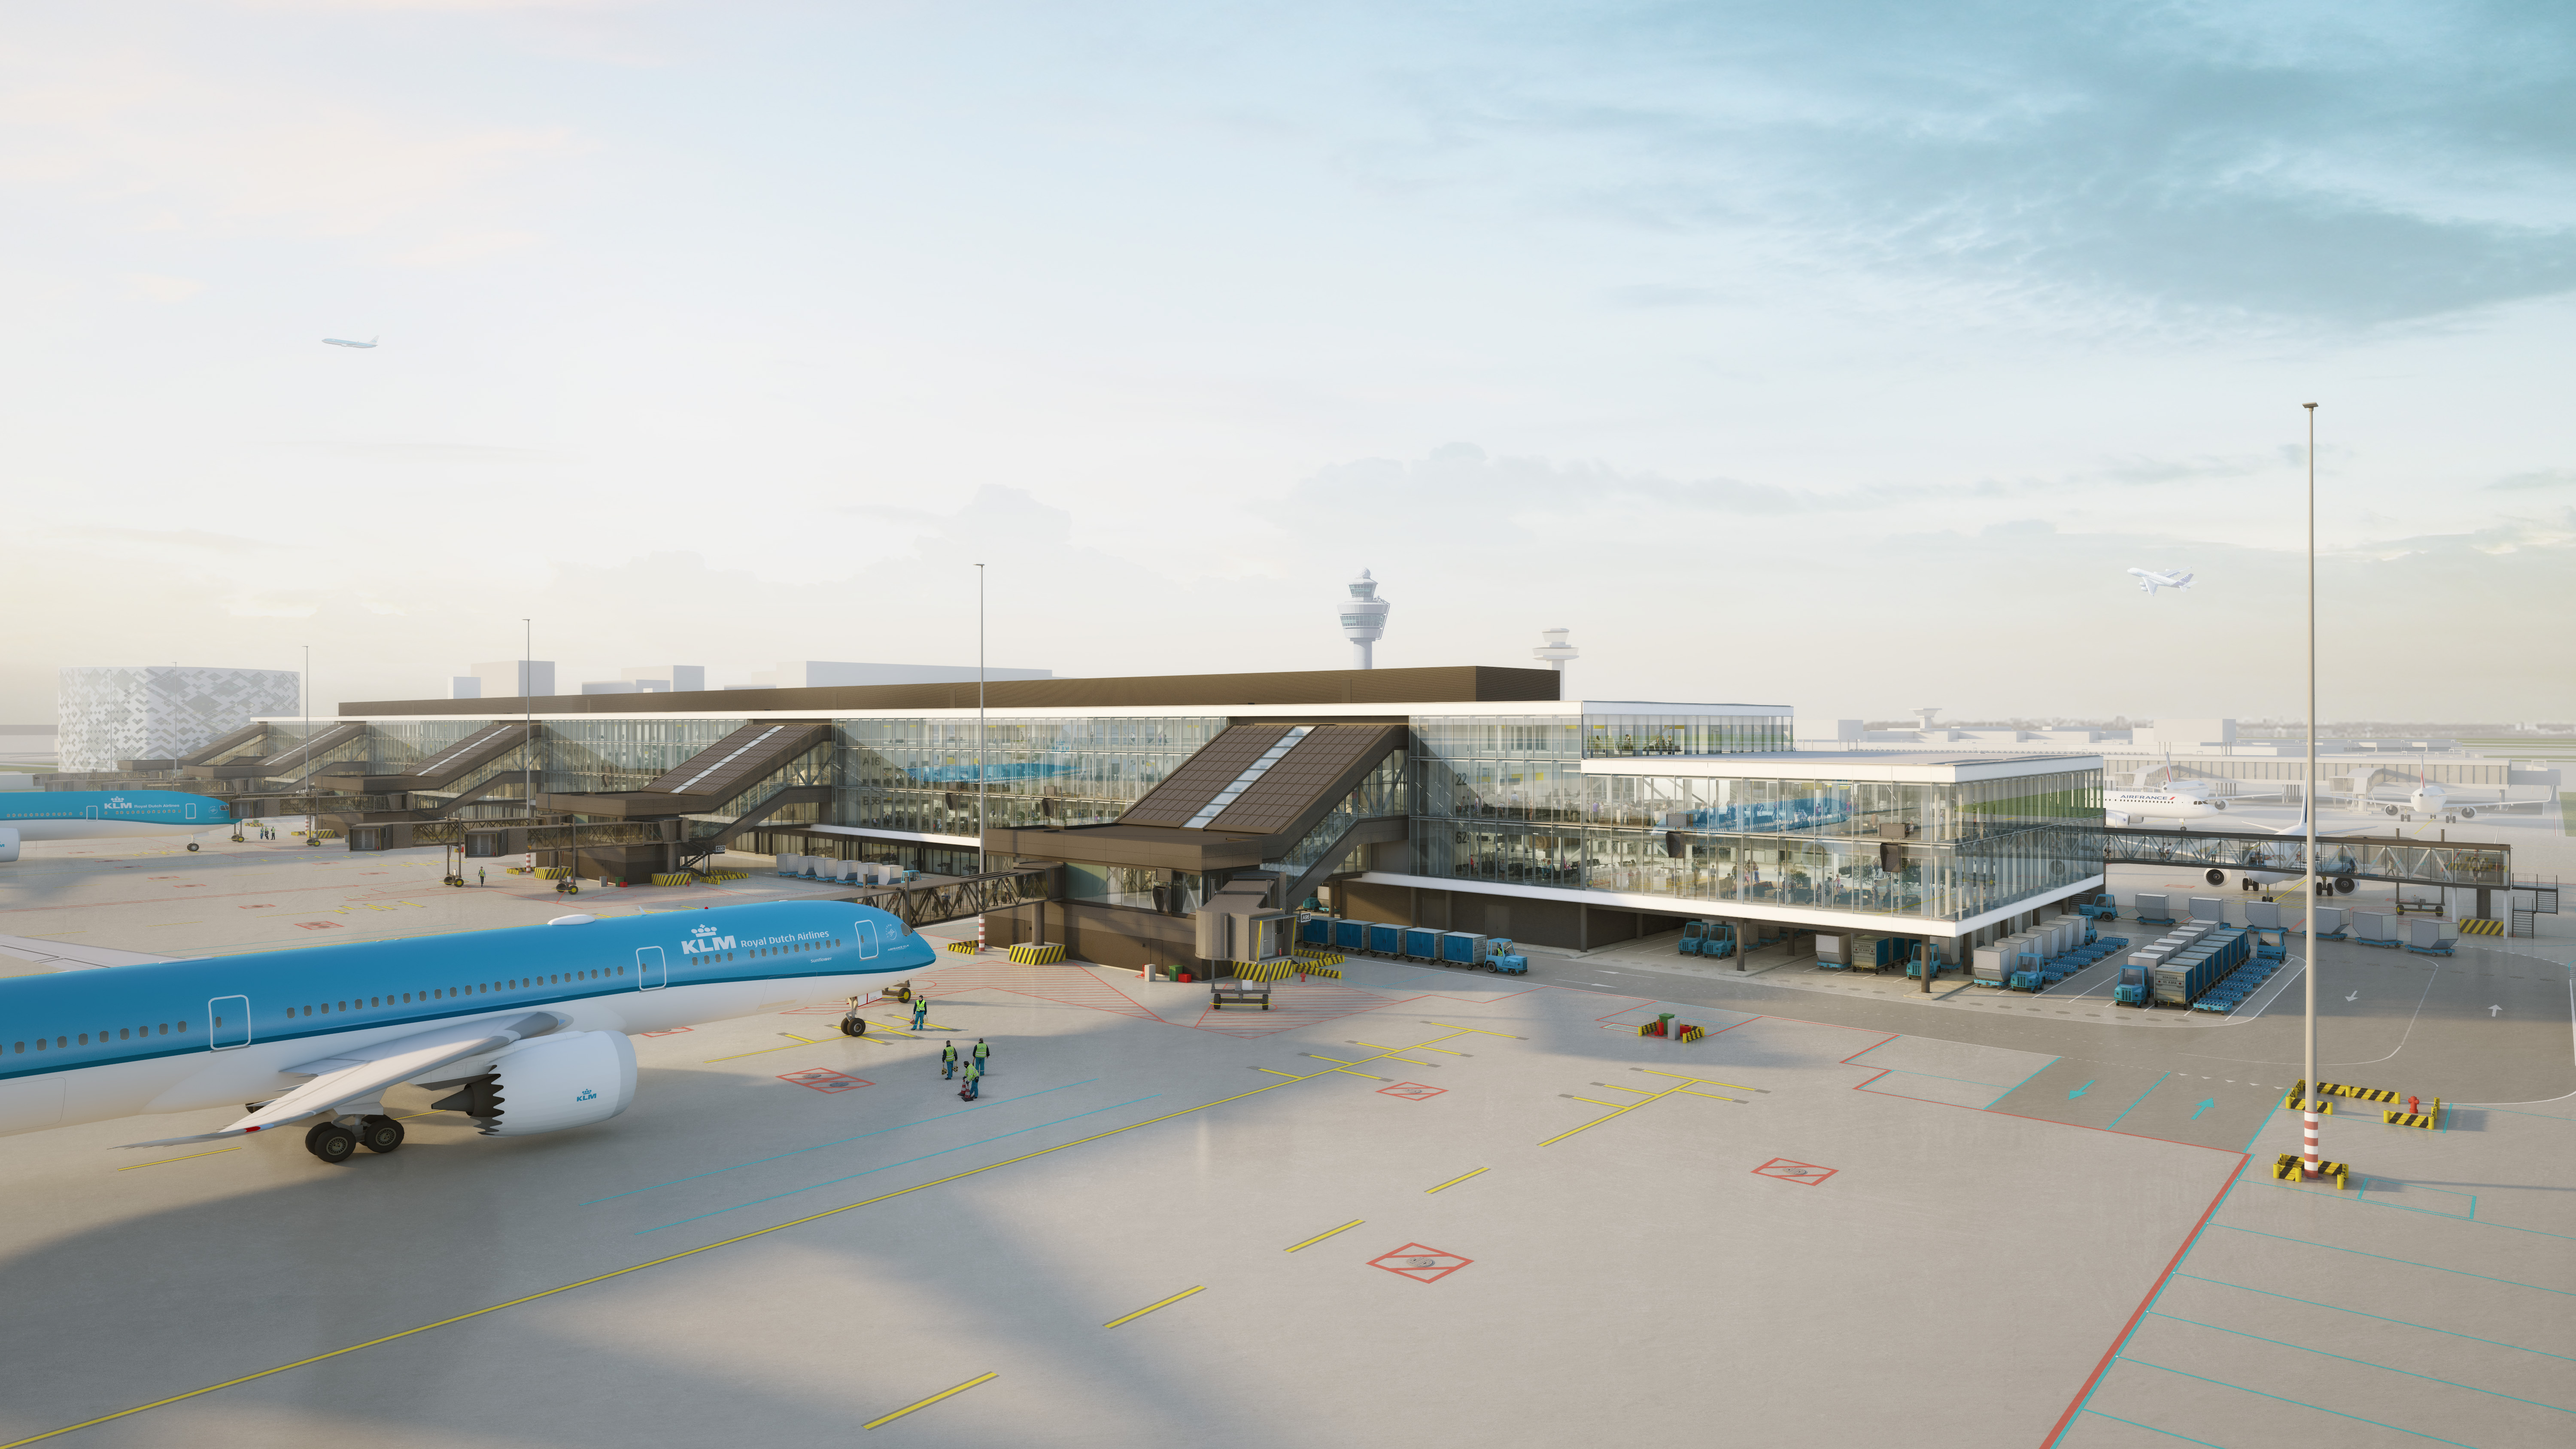 Schiphol airport expansion entrusted to Aecom 93